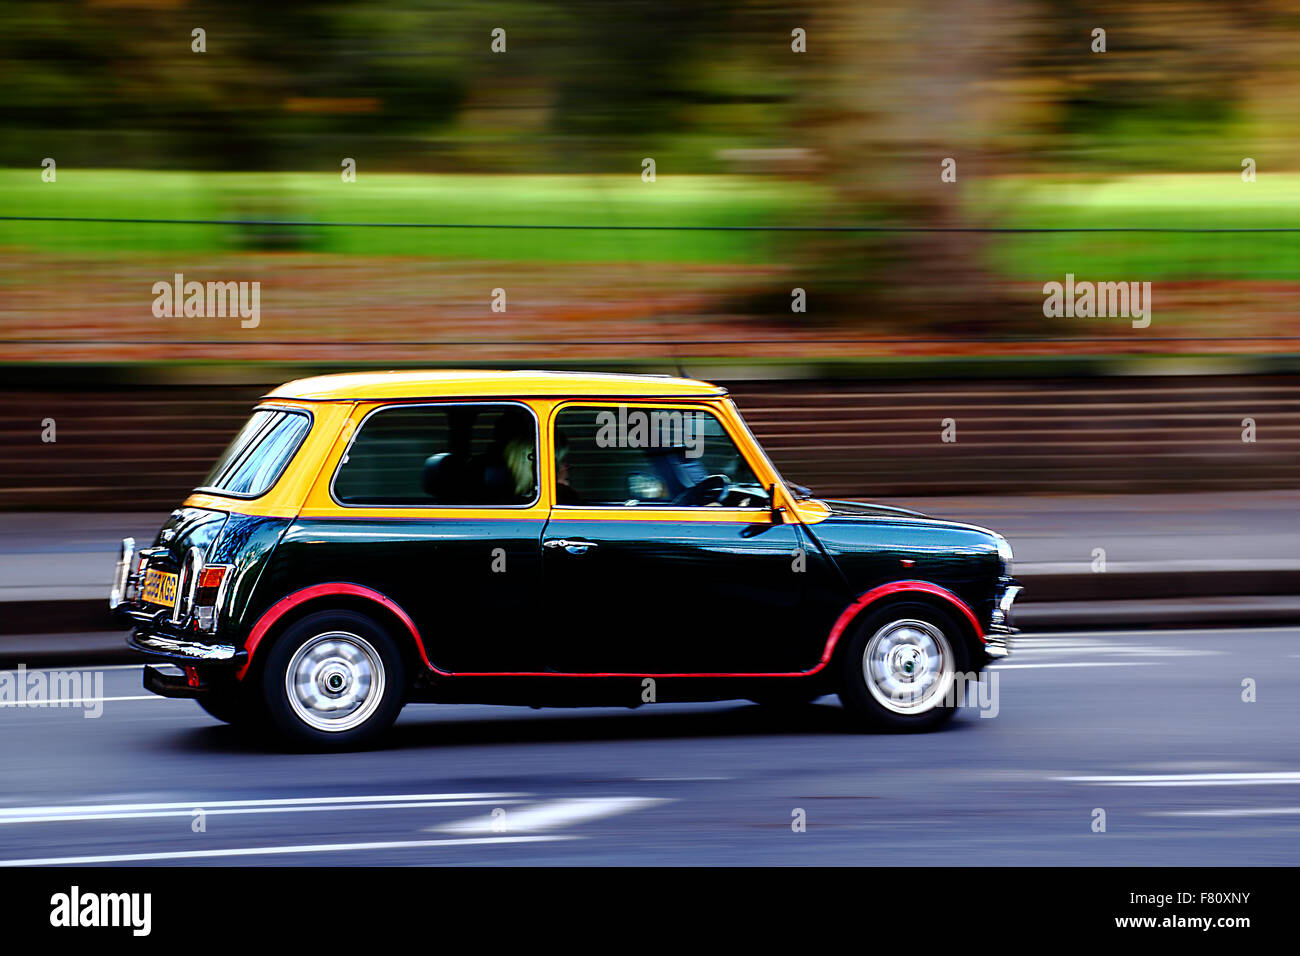 Original Mini travelling through Kensington, London, UK - Stock Image